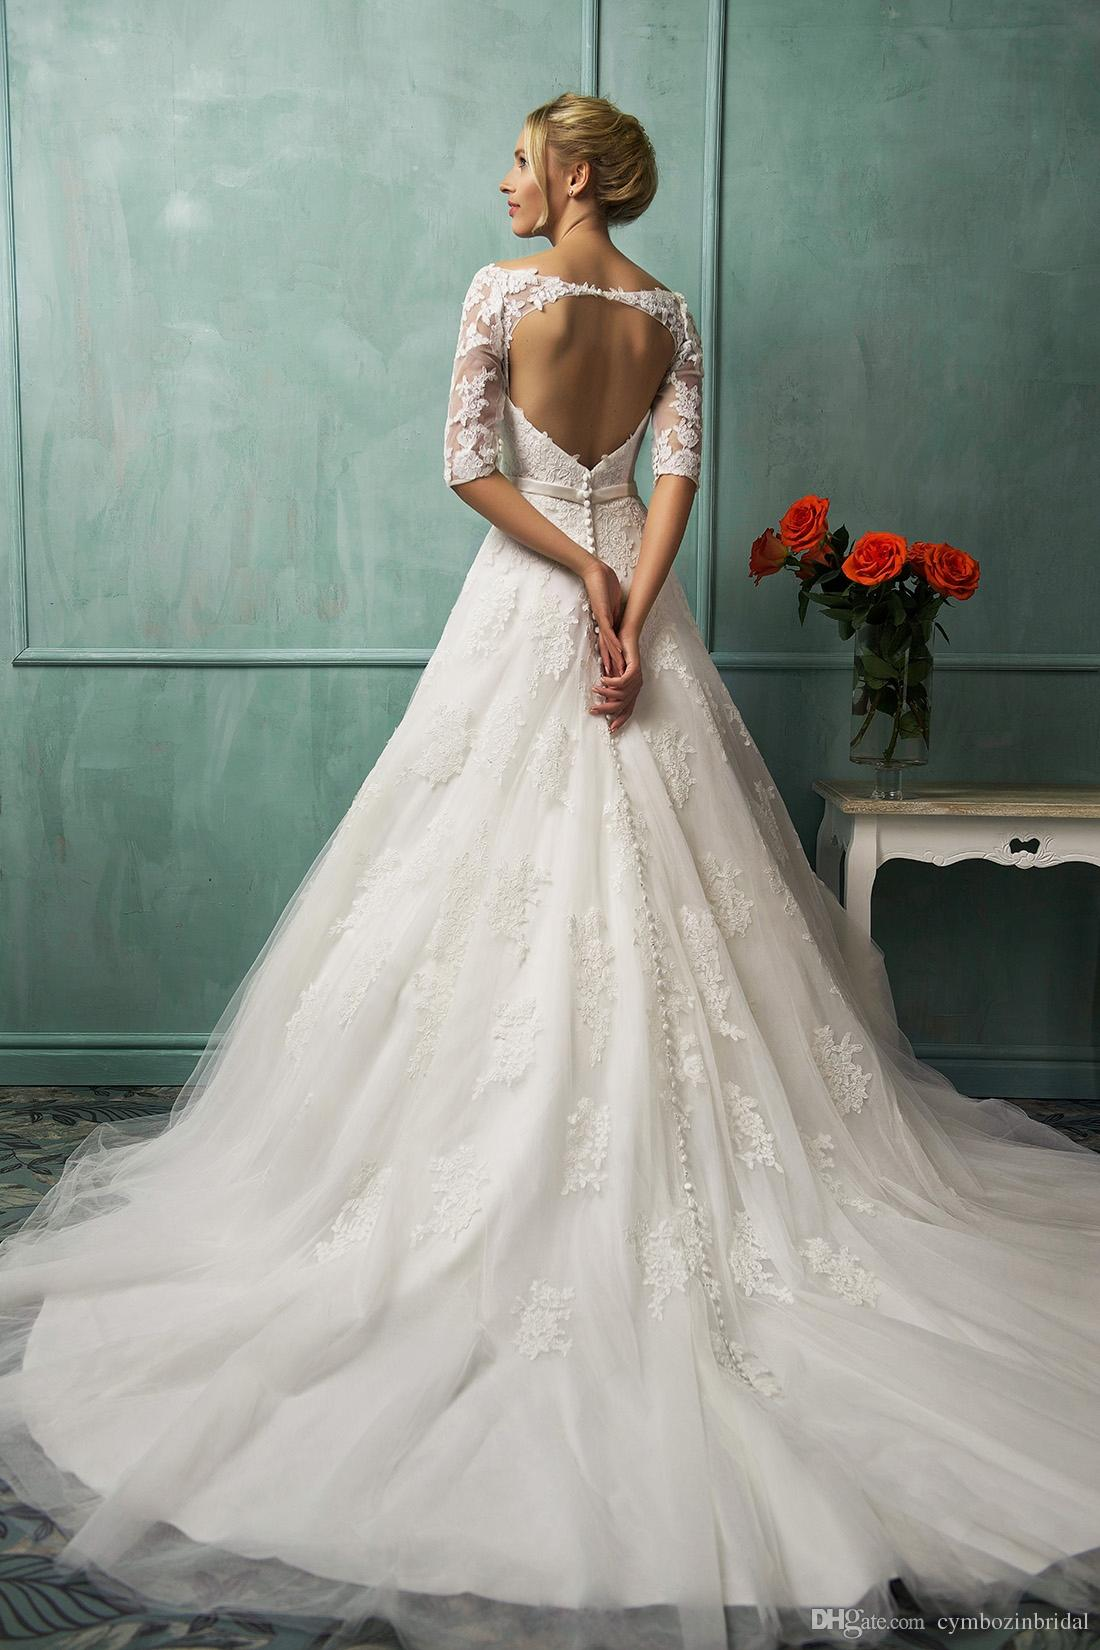 Unique Heart Shape Backless Wedding Dress Simple A Line Sweep Train Jewel Neck Lace Applique